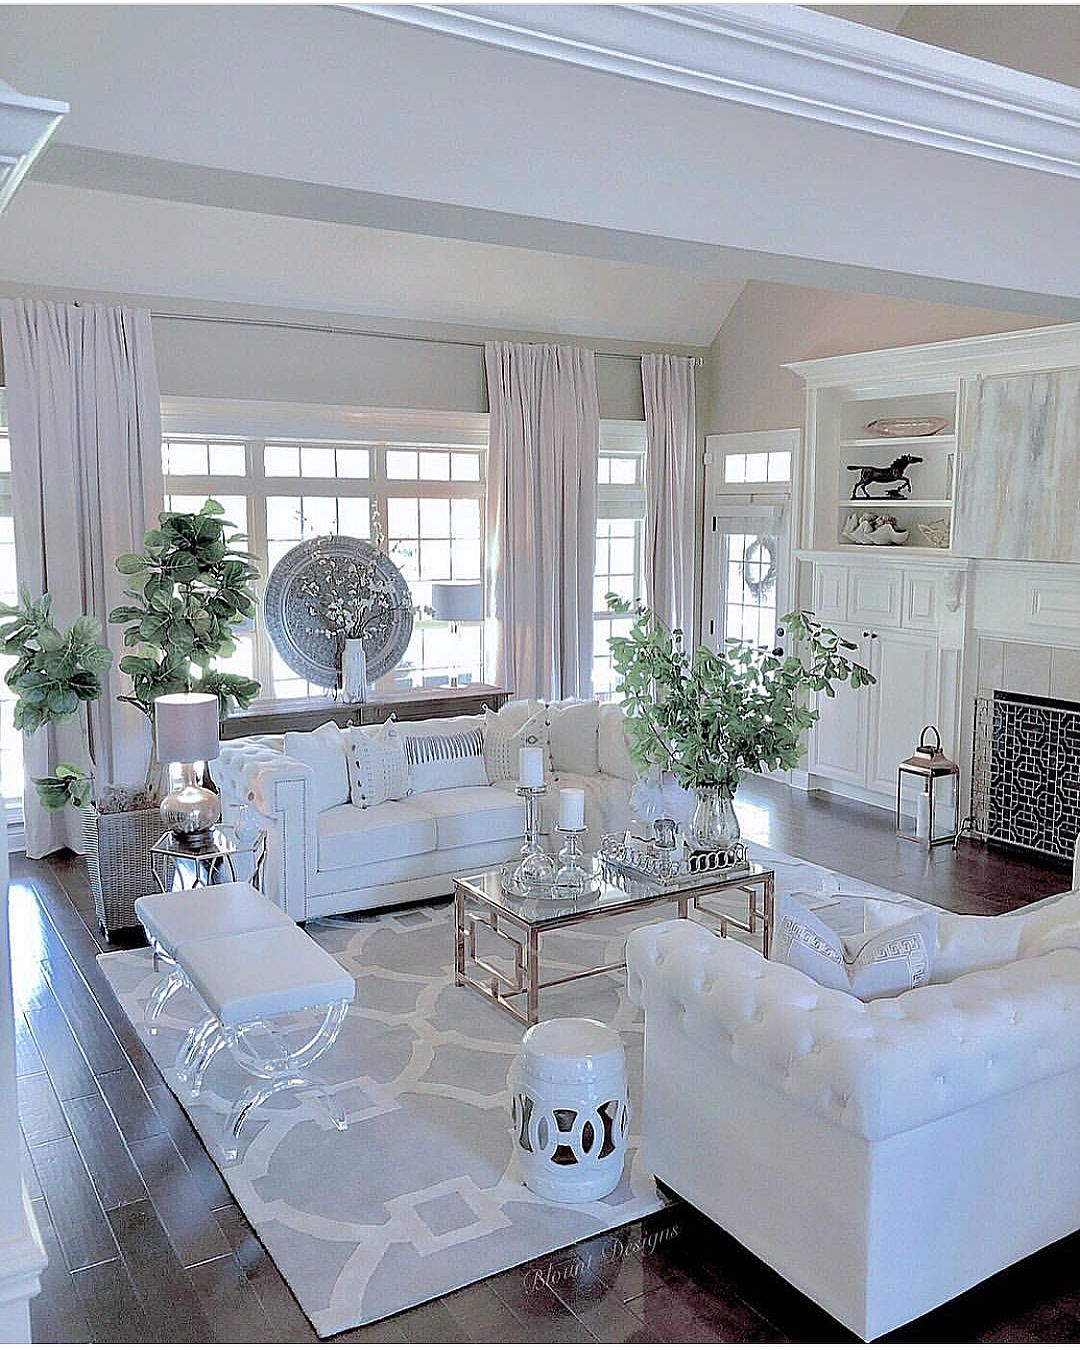 Inspire Me Home Decor Living Room: Loooove The Way @blountdesigns Styled Her Inspire Me! Home